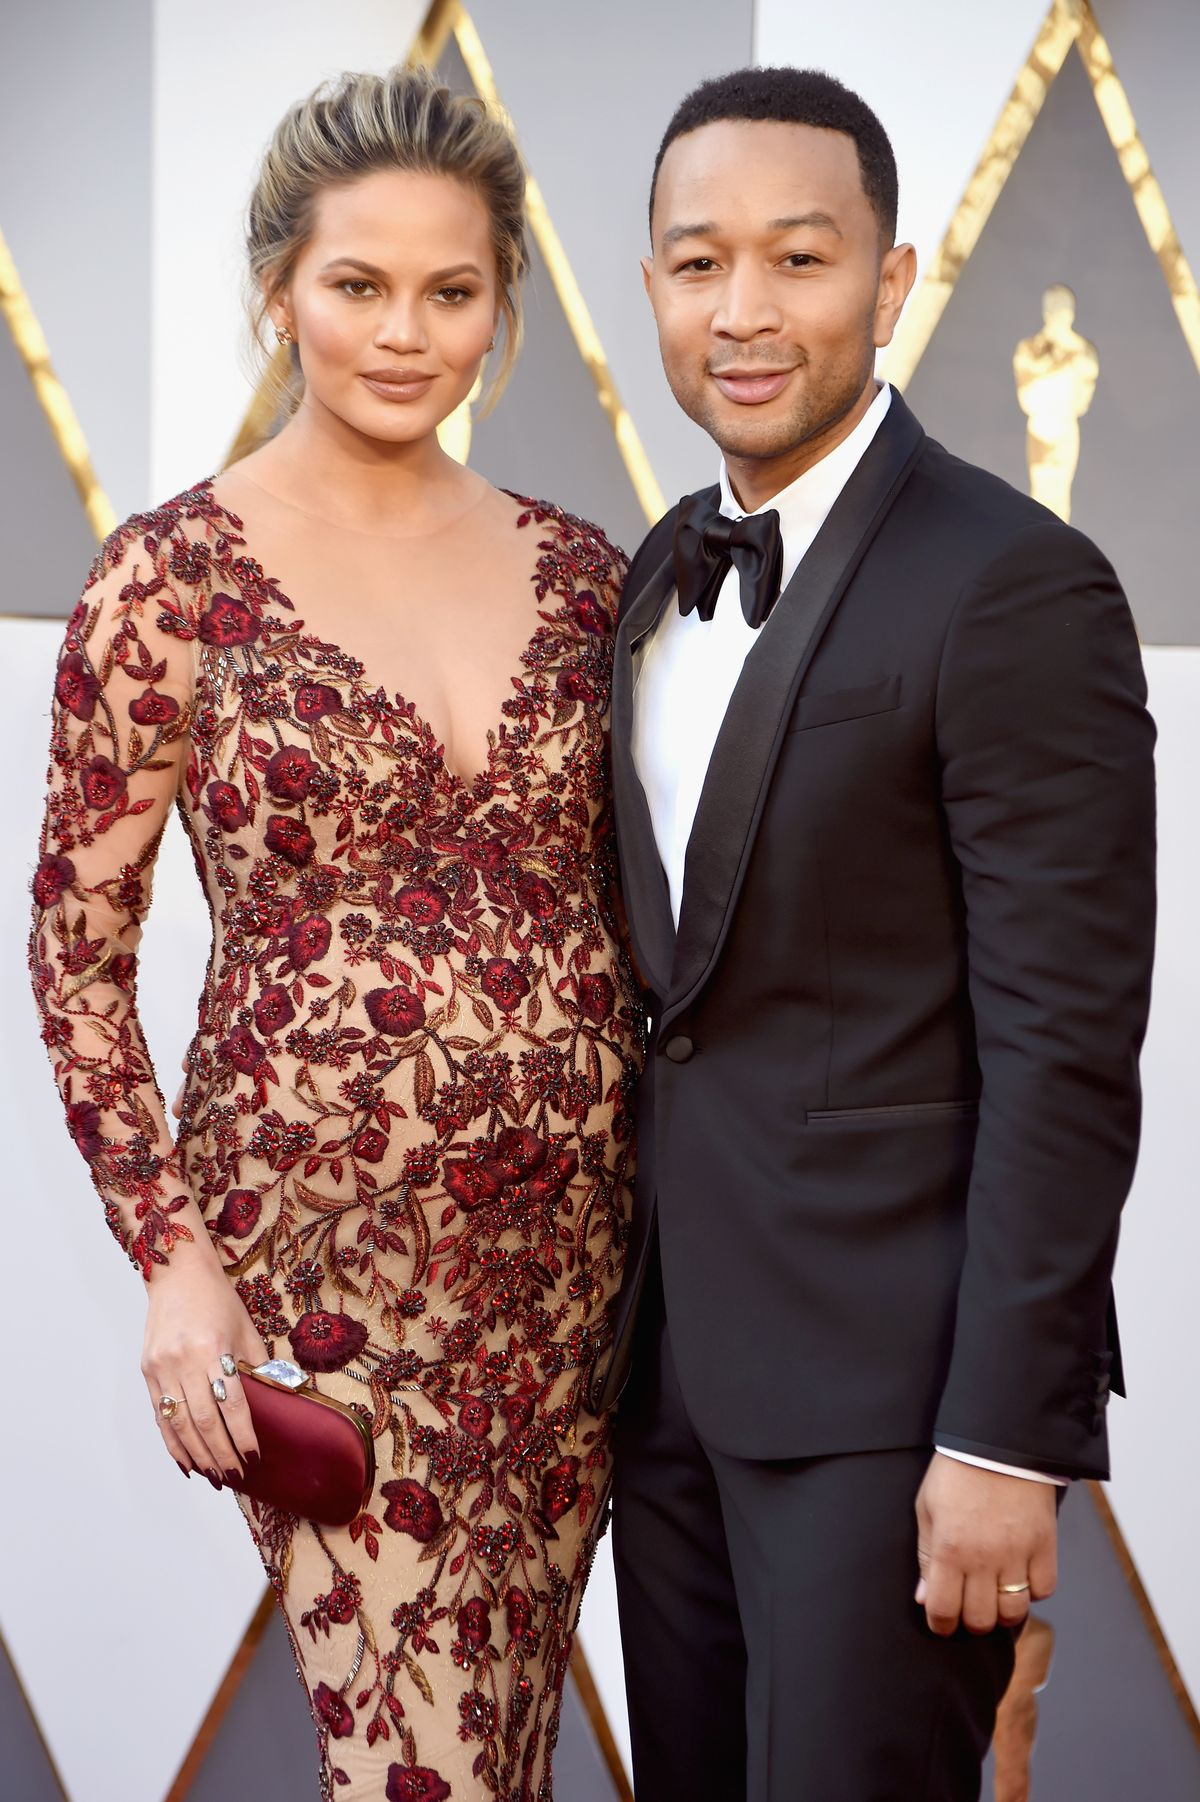 HOLLYWOOD, CA - FEBRUARY 28: Model/TV personality Chrissy Teigen (L) and musician John Legend attend the 88th Annual Academy Awards at Hollywood & Highland Center on February 28, 2016 in Hollywood, California. (Photo by Jeff Kravitz/FilmMagic)